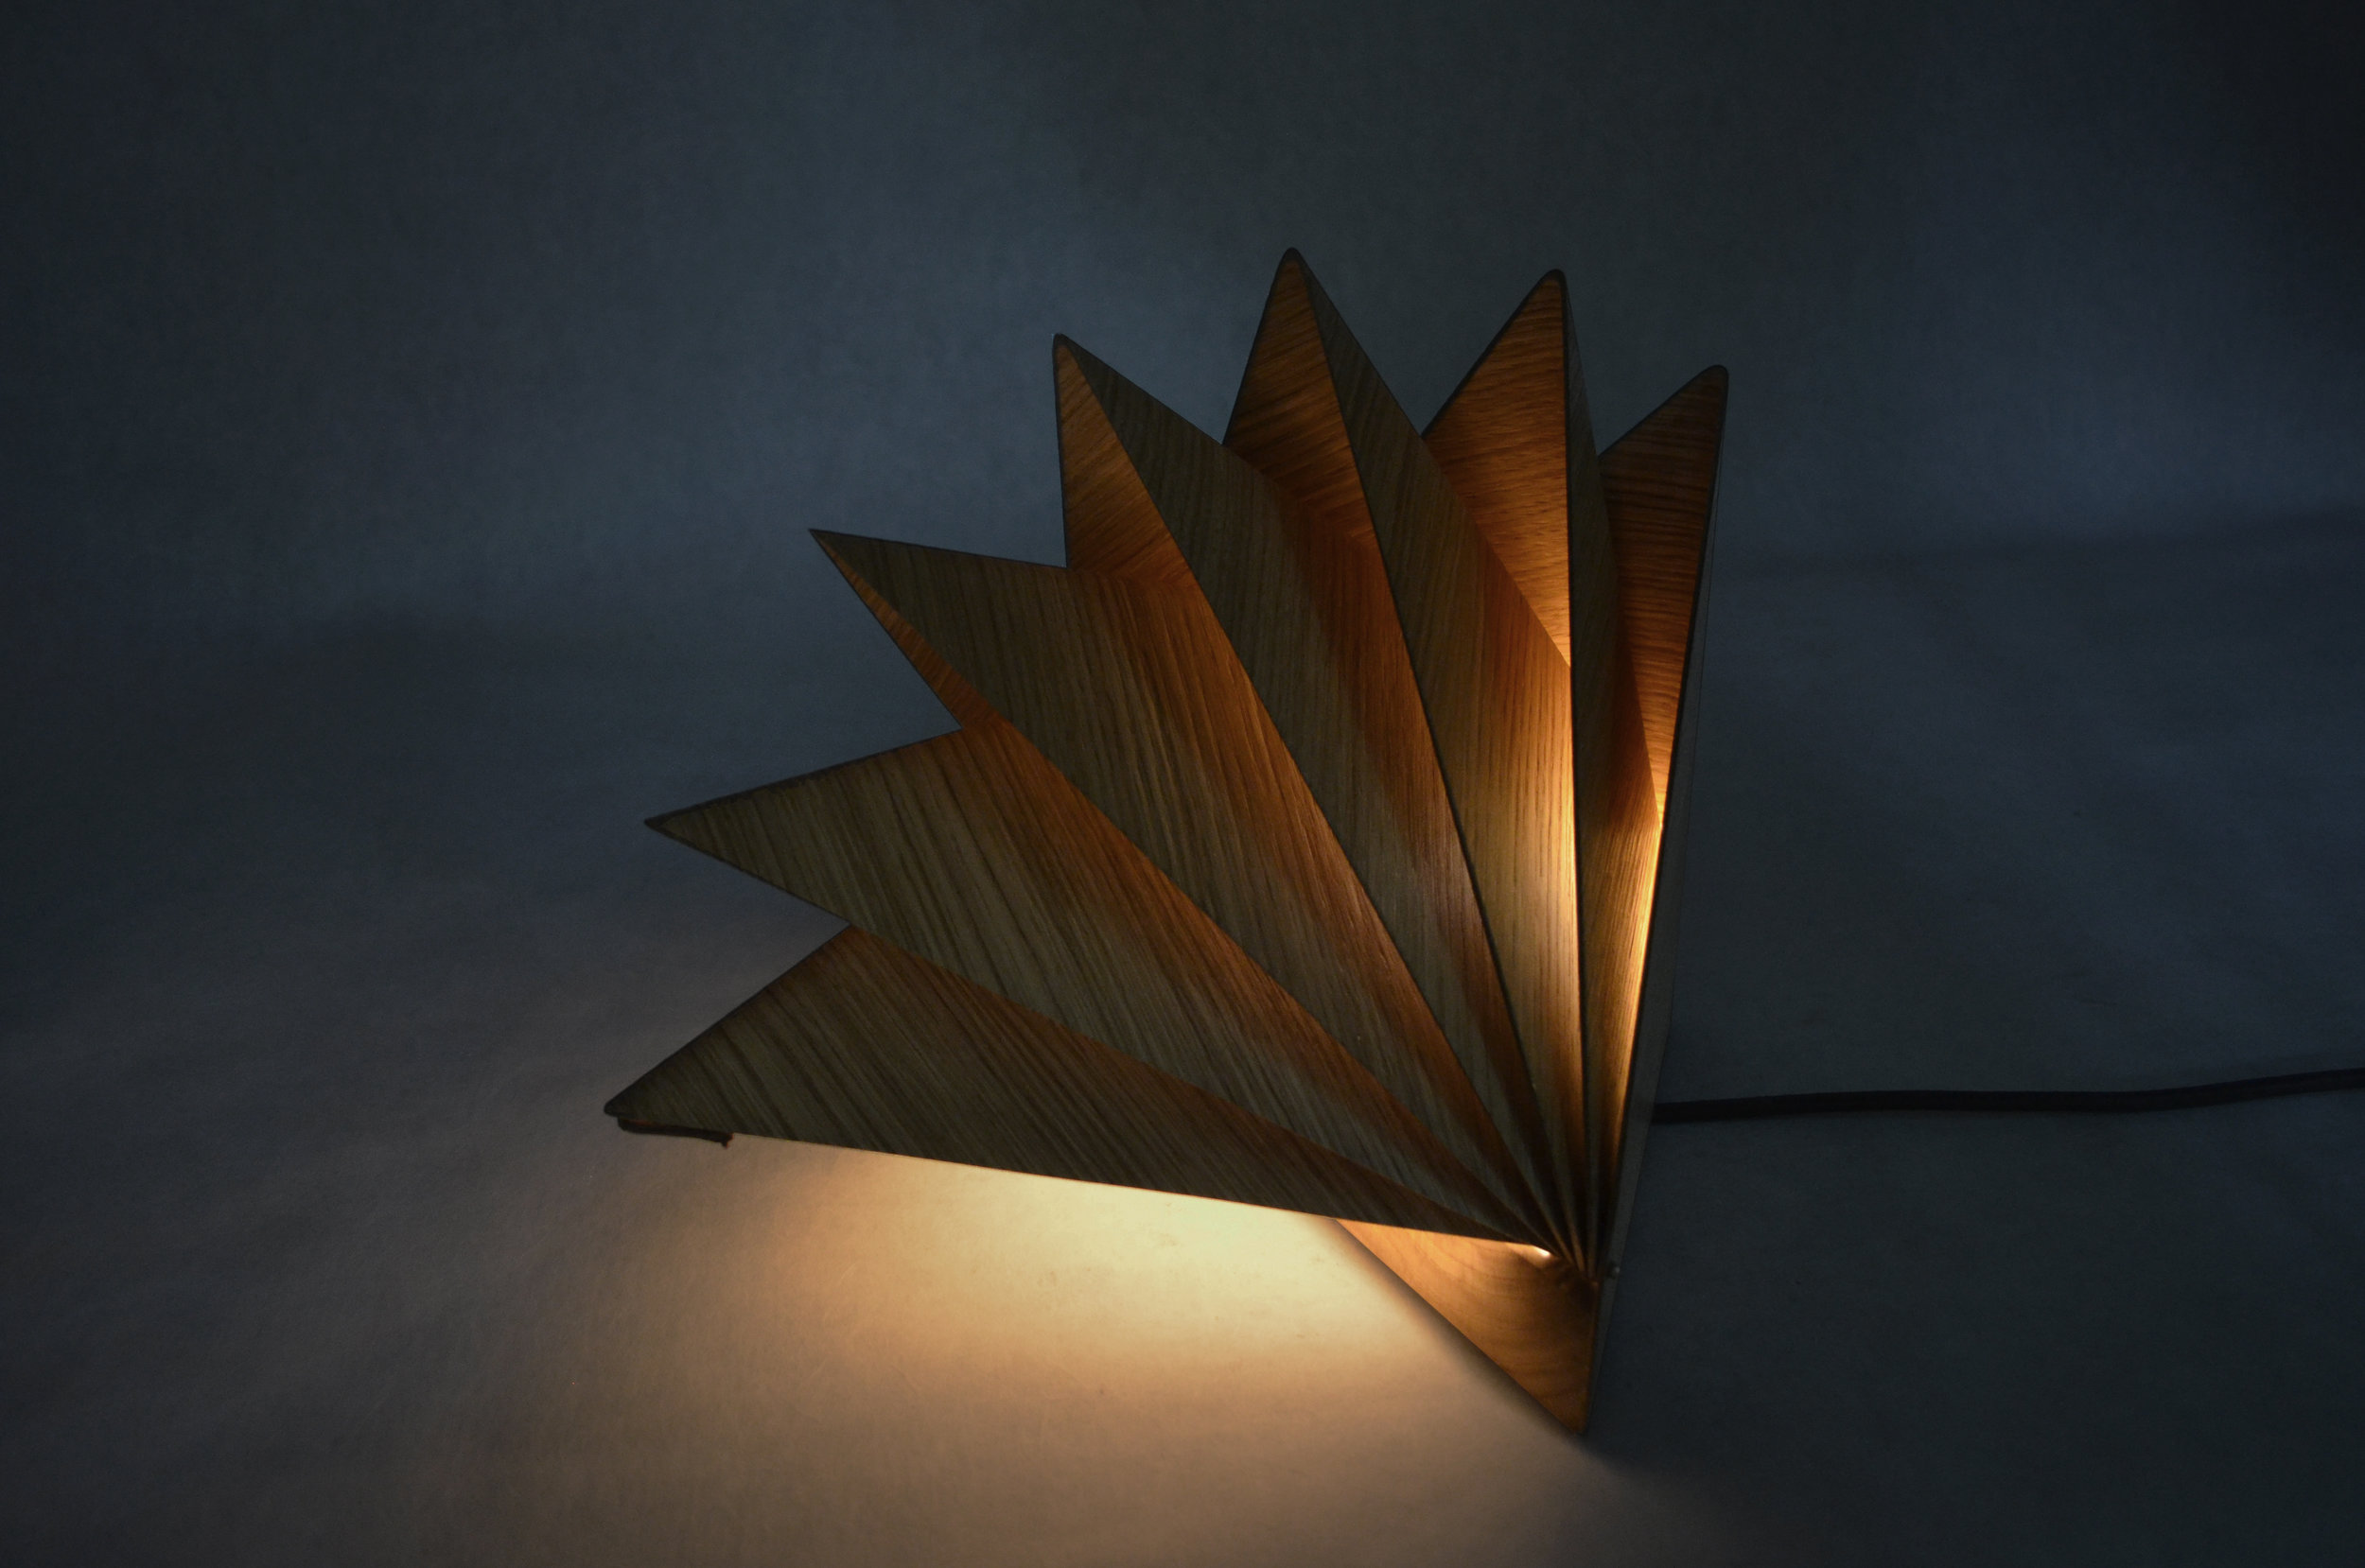 Klara Varosy  , Bloom , 2016.Solid oak, oak veneer, Plexiglas, leather, brass hardware, LED bulb & components.Closed: 9 1/4 x 13 1/4 x 8 1/2 in.Open: 15 x 13 1/4 x 10 in.Courtesy of the Artist.2016.KV.01. Photo: Courtesy of the Artist   METHOD:CNC (Computer Numerical Control router), laser cut, laser engraved, wet-bent, vacuum formed, handcrafted